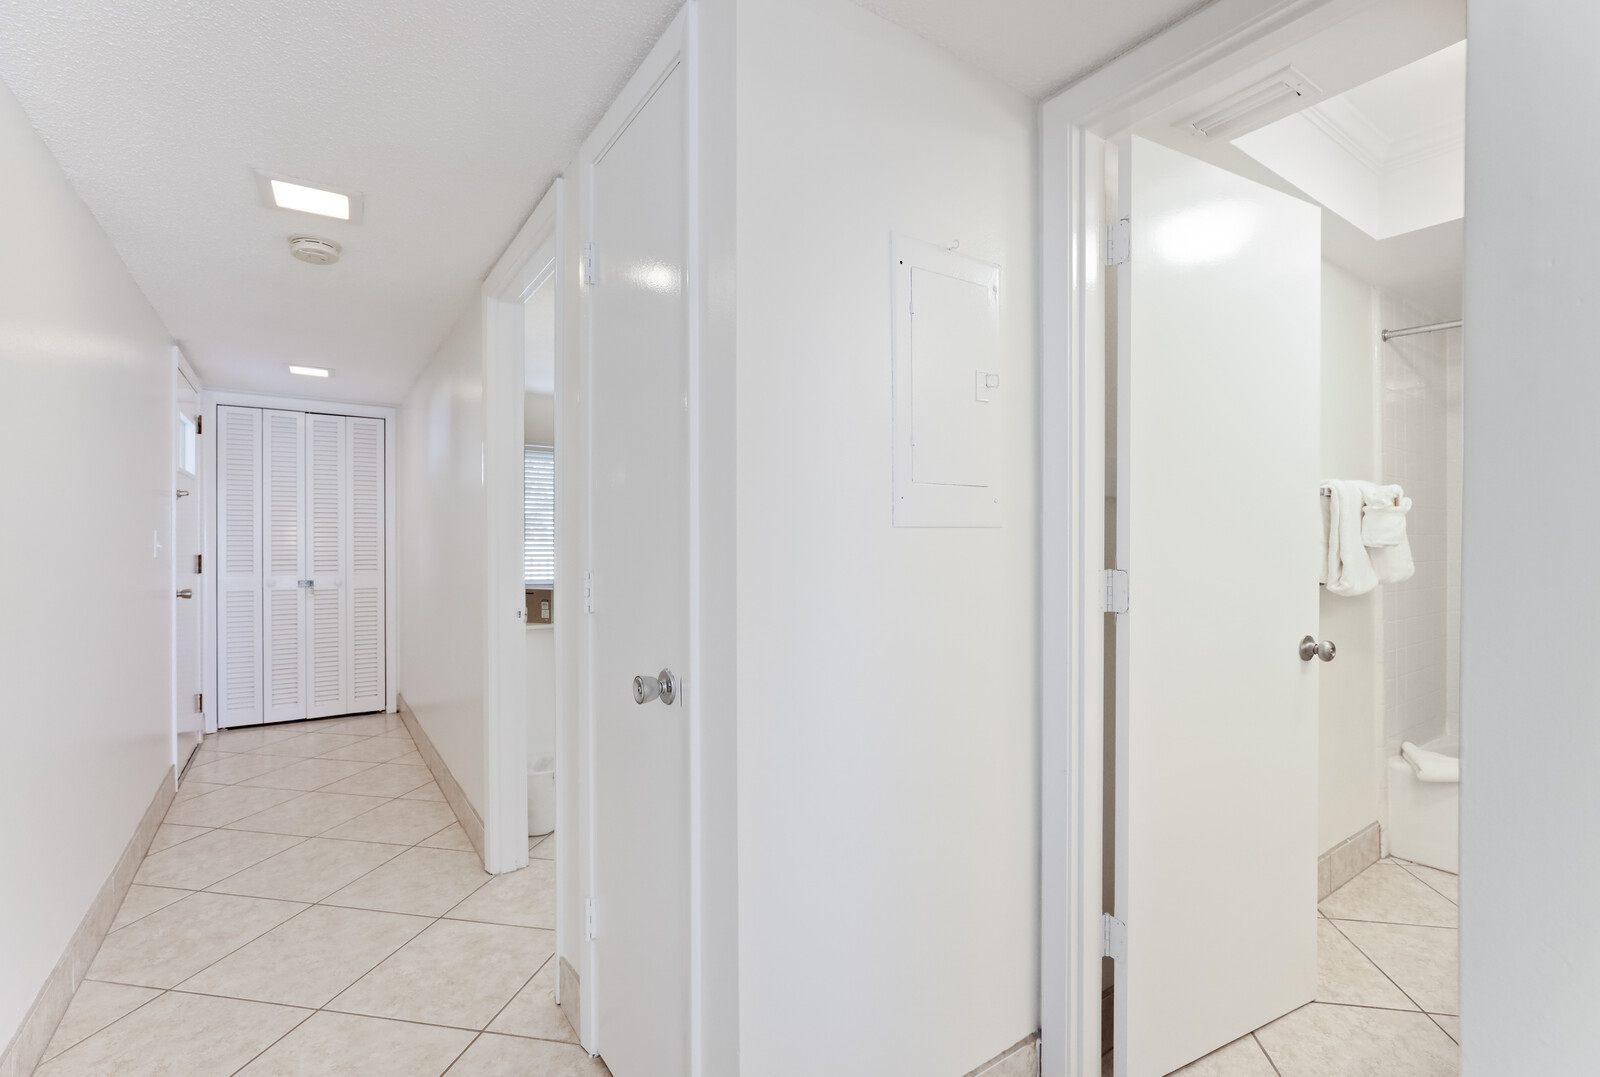 Hallway to bedroom and bathroom